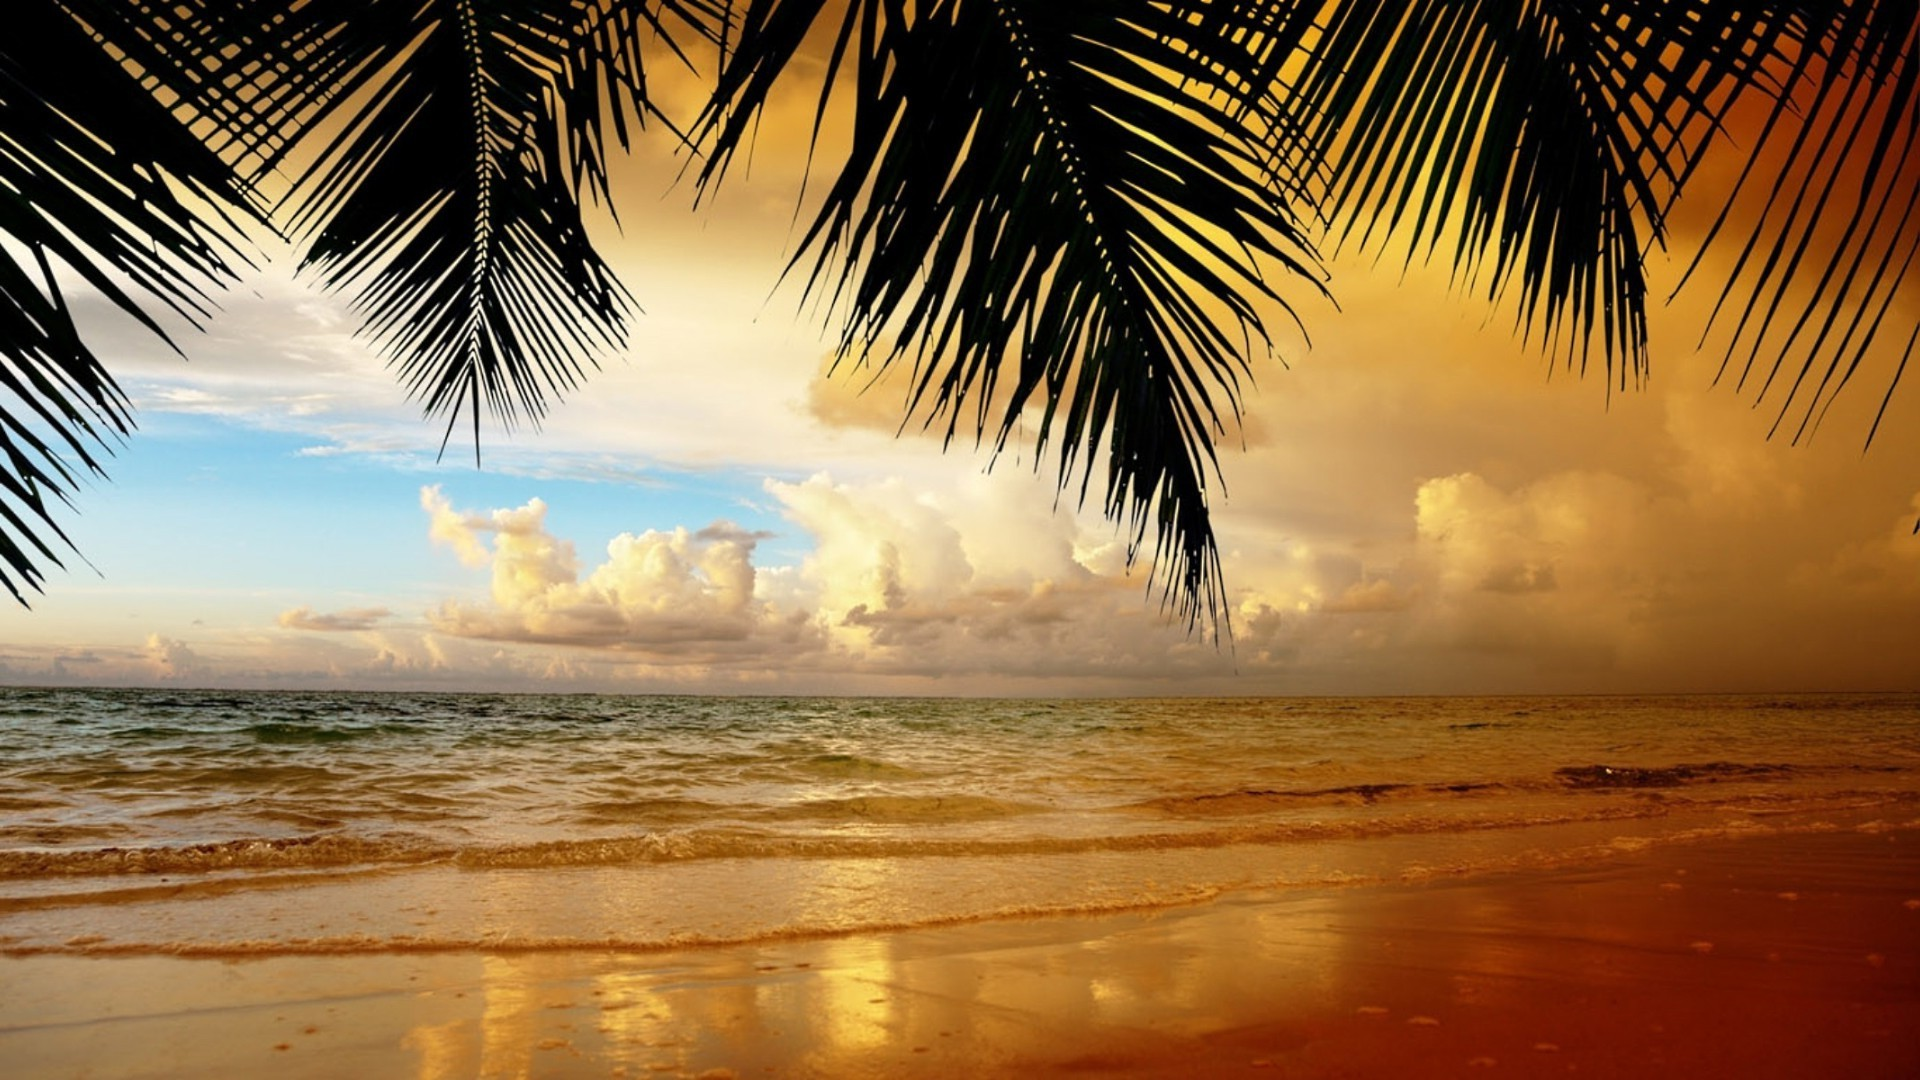 sea and ocean beach tropical sun sand water summer ocean sunset palm exotic seashore seascape resort travel sea island relaxation vacation sky idyllic